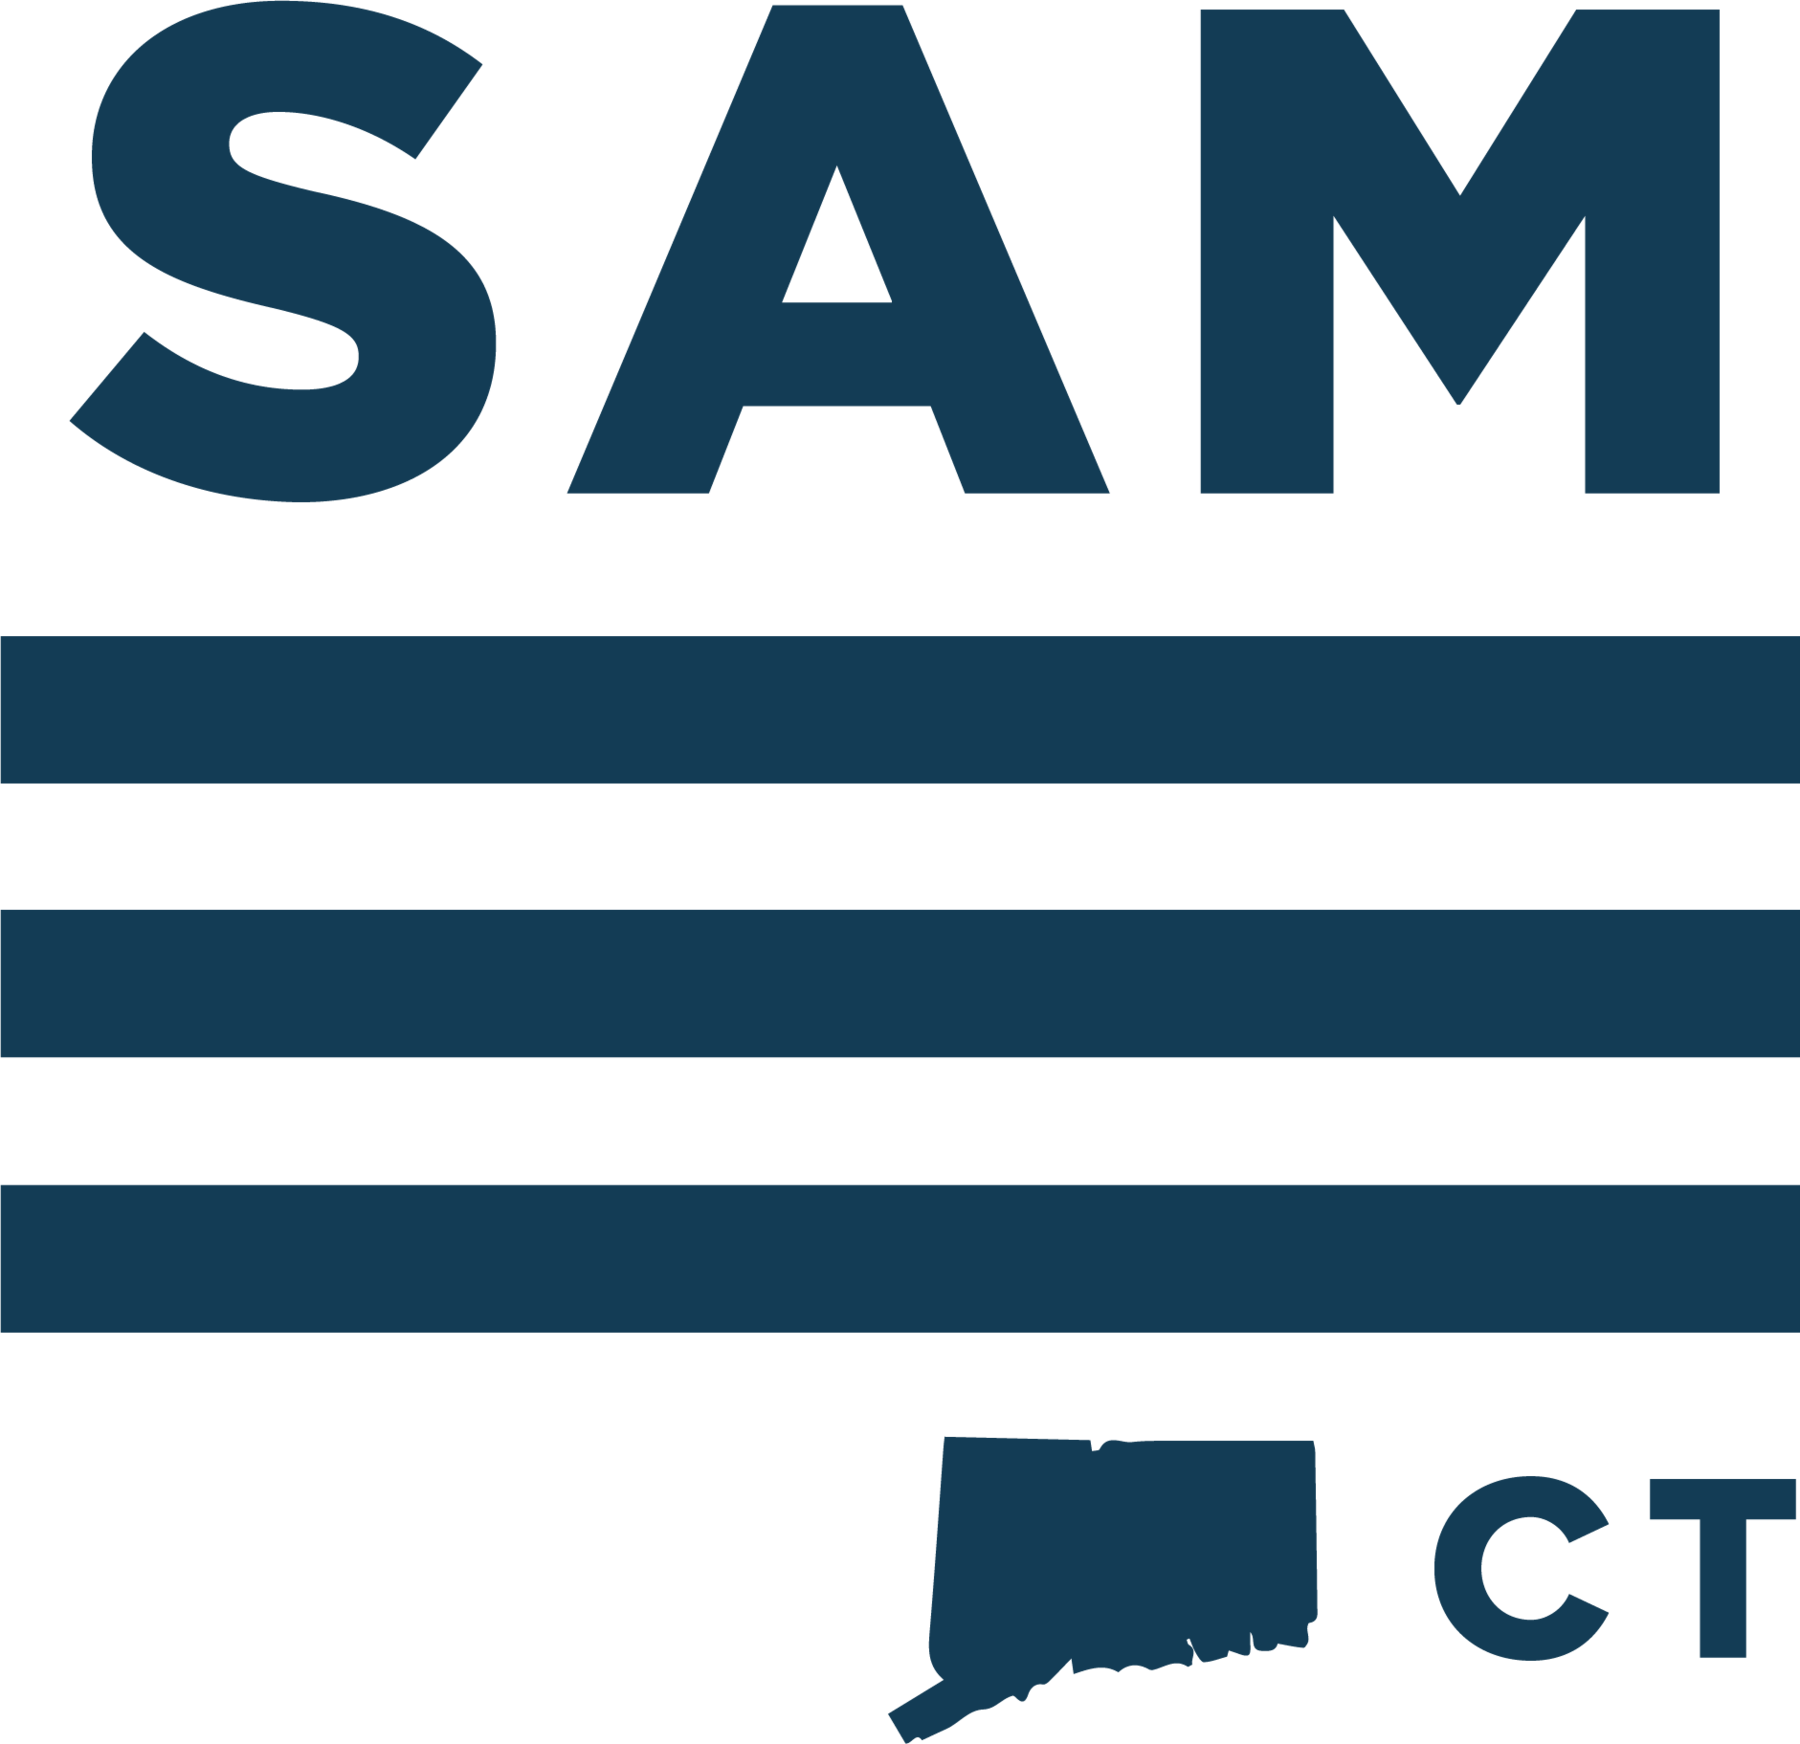 SAM CT: General Fund - SAM Connecticut